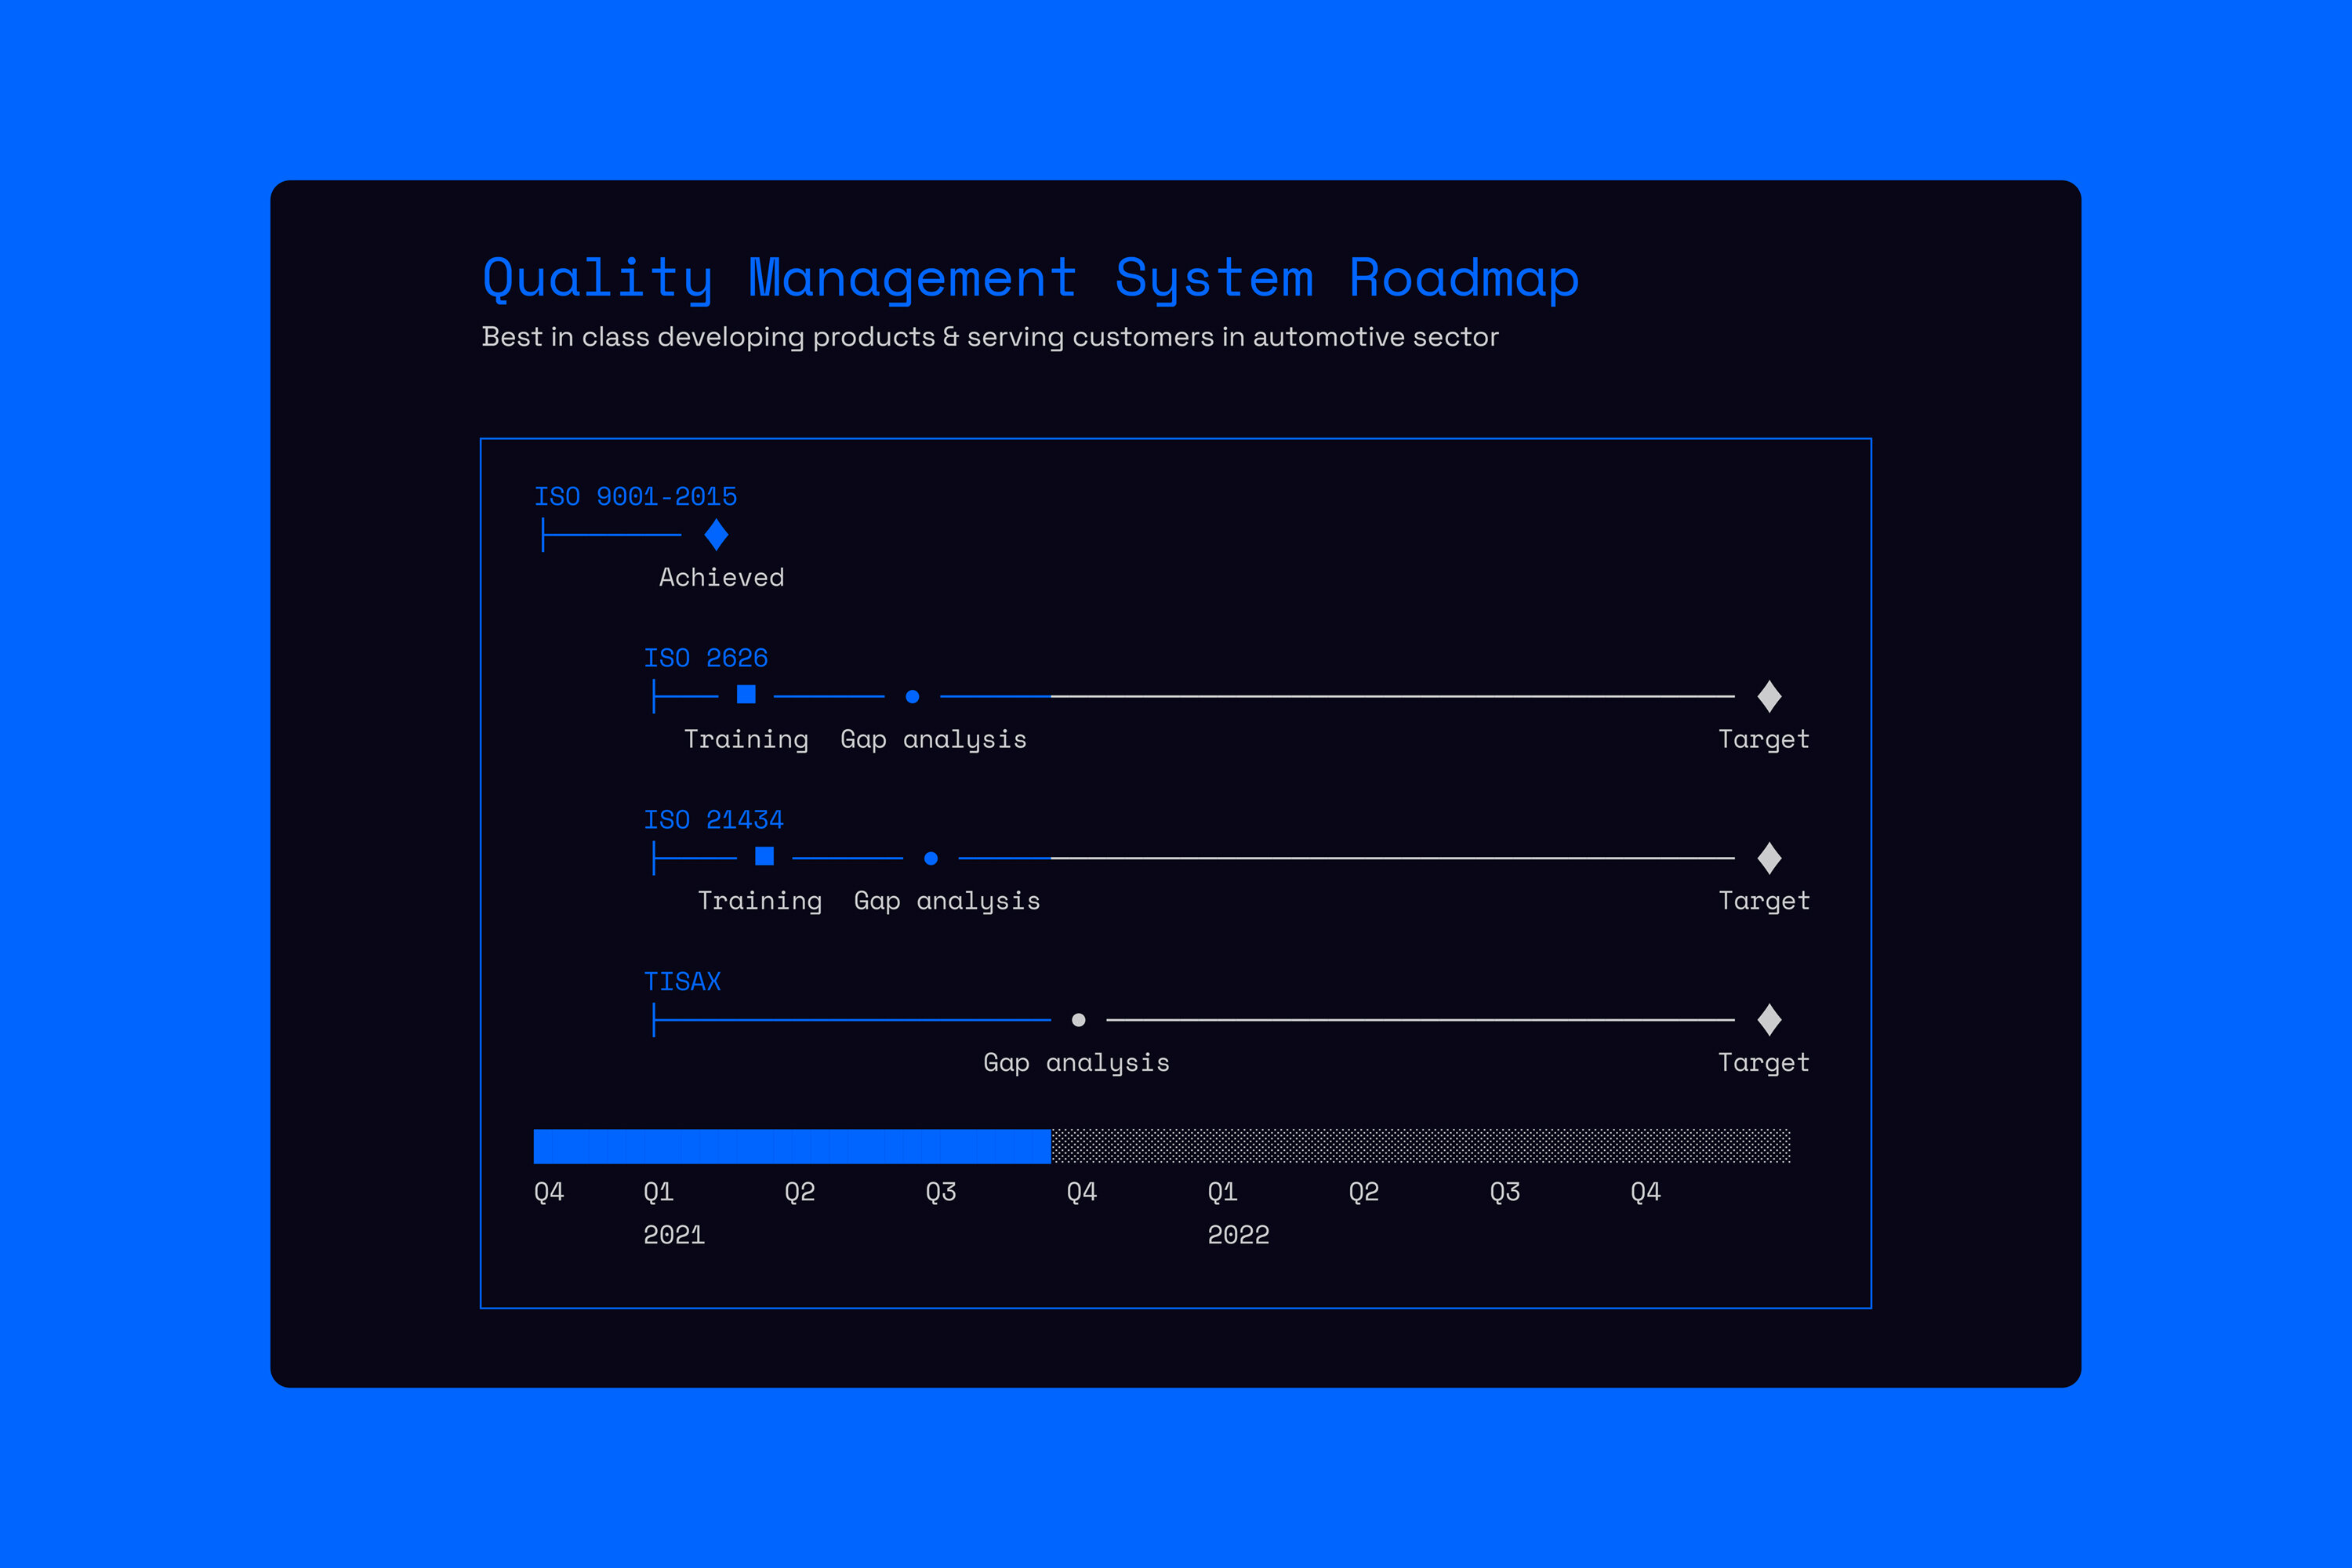 ROW_Quality_Management_system_Roadmap